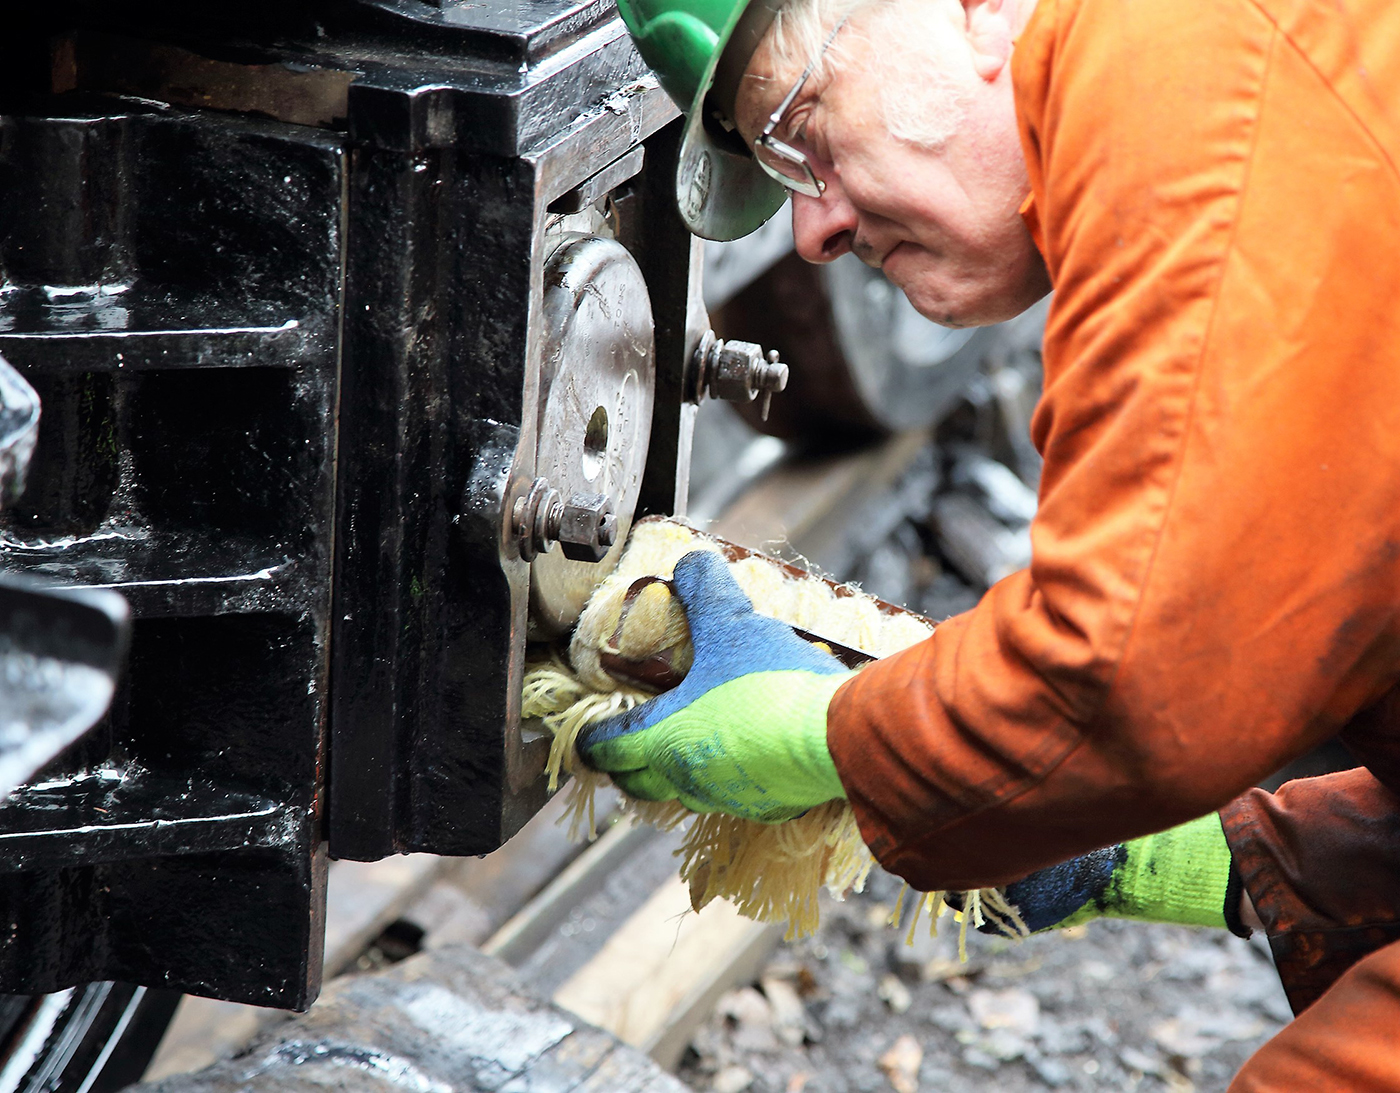 Man working on steam train